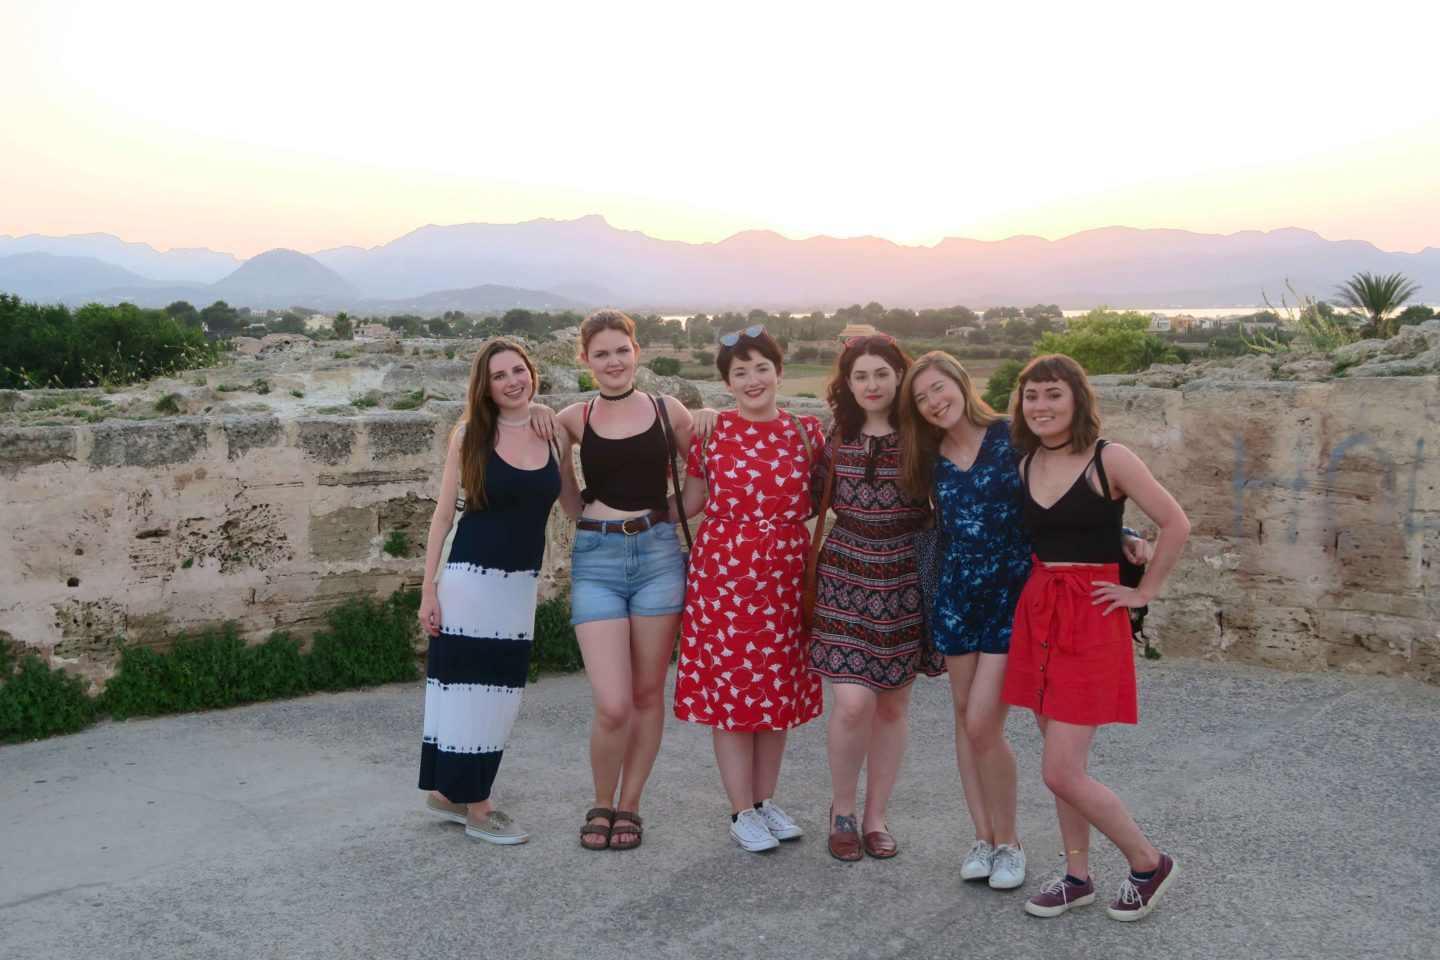 melissa carne's friends on holiday in Alcudia, Mallorca